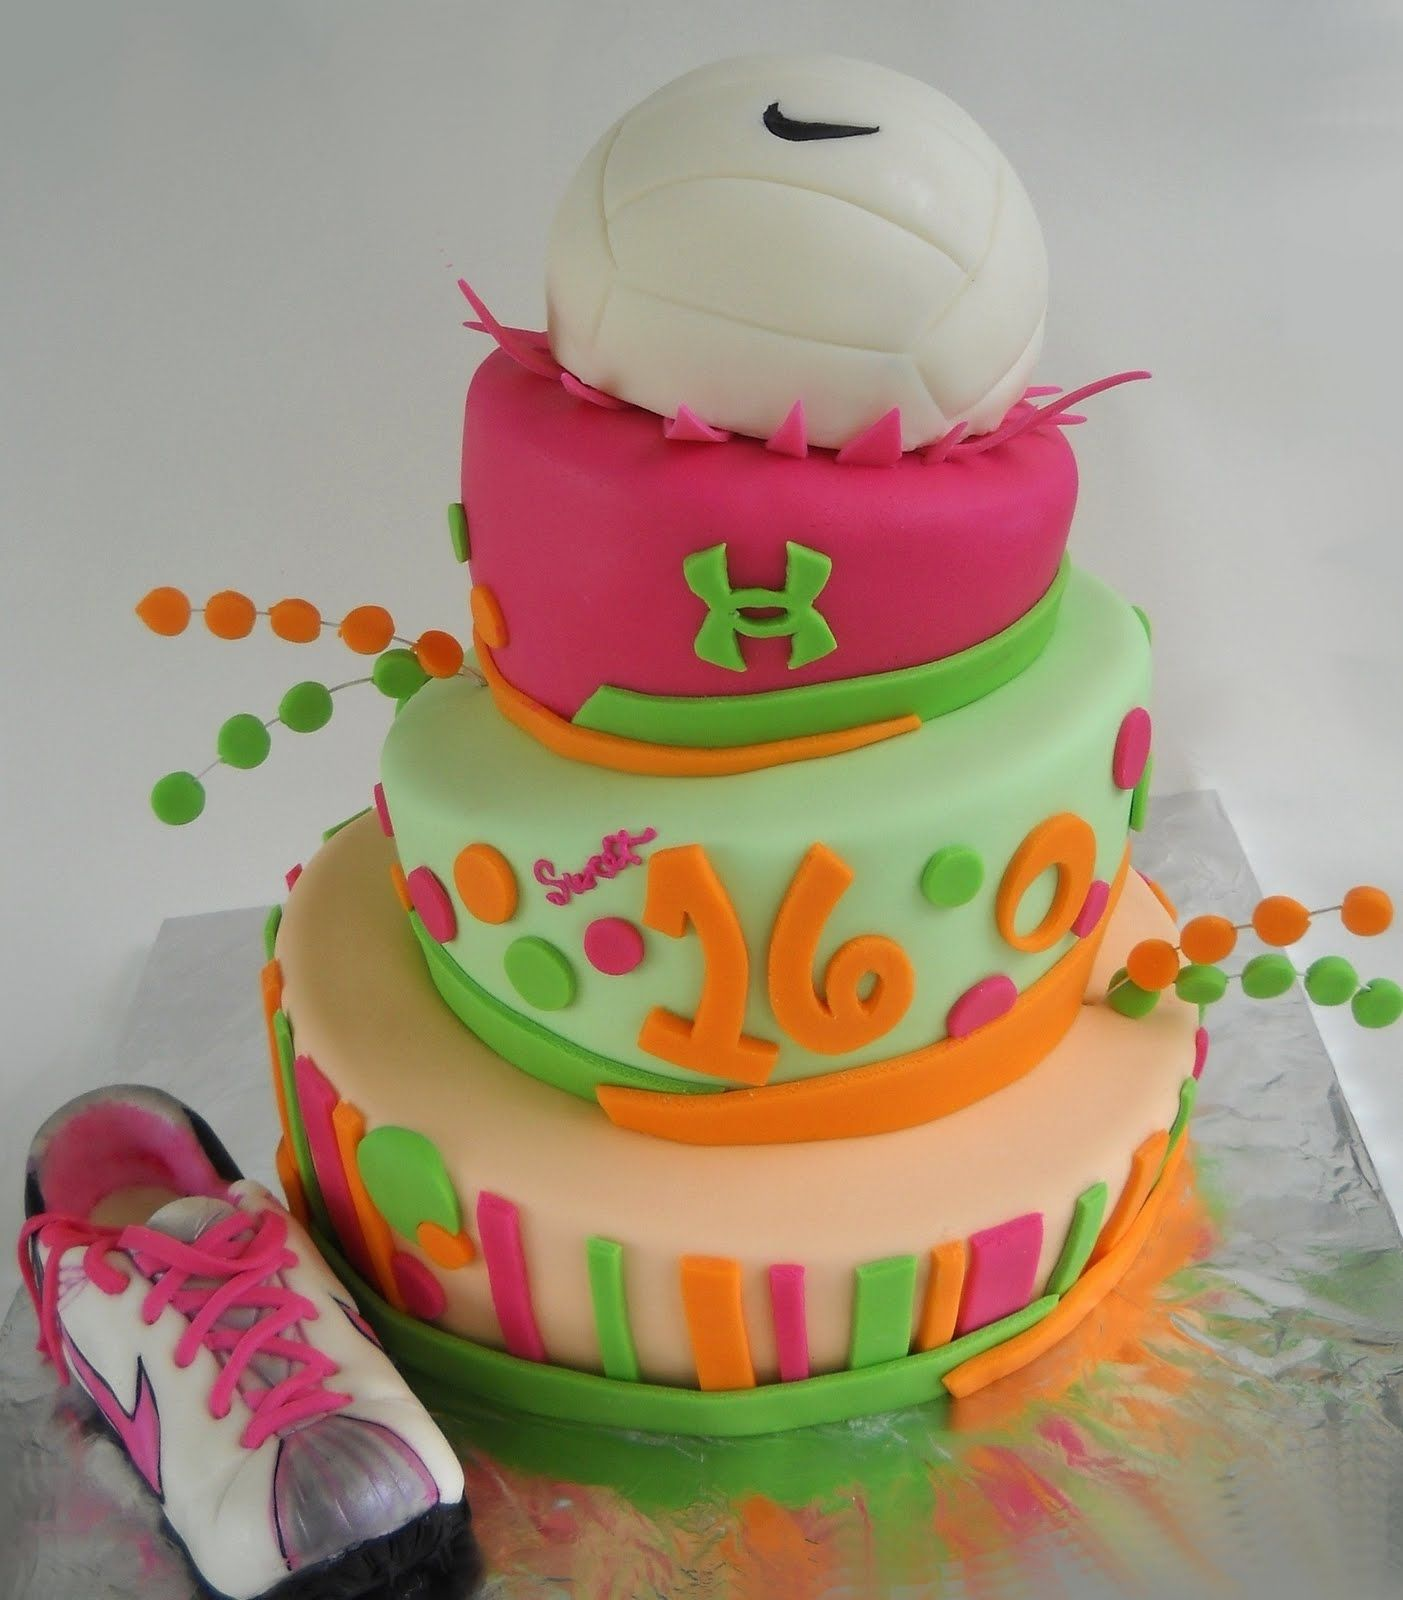 volleyball cakes sweet 16 topsy turvy cake for a sporty and fun